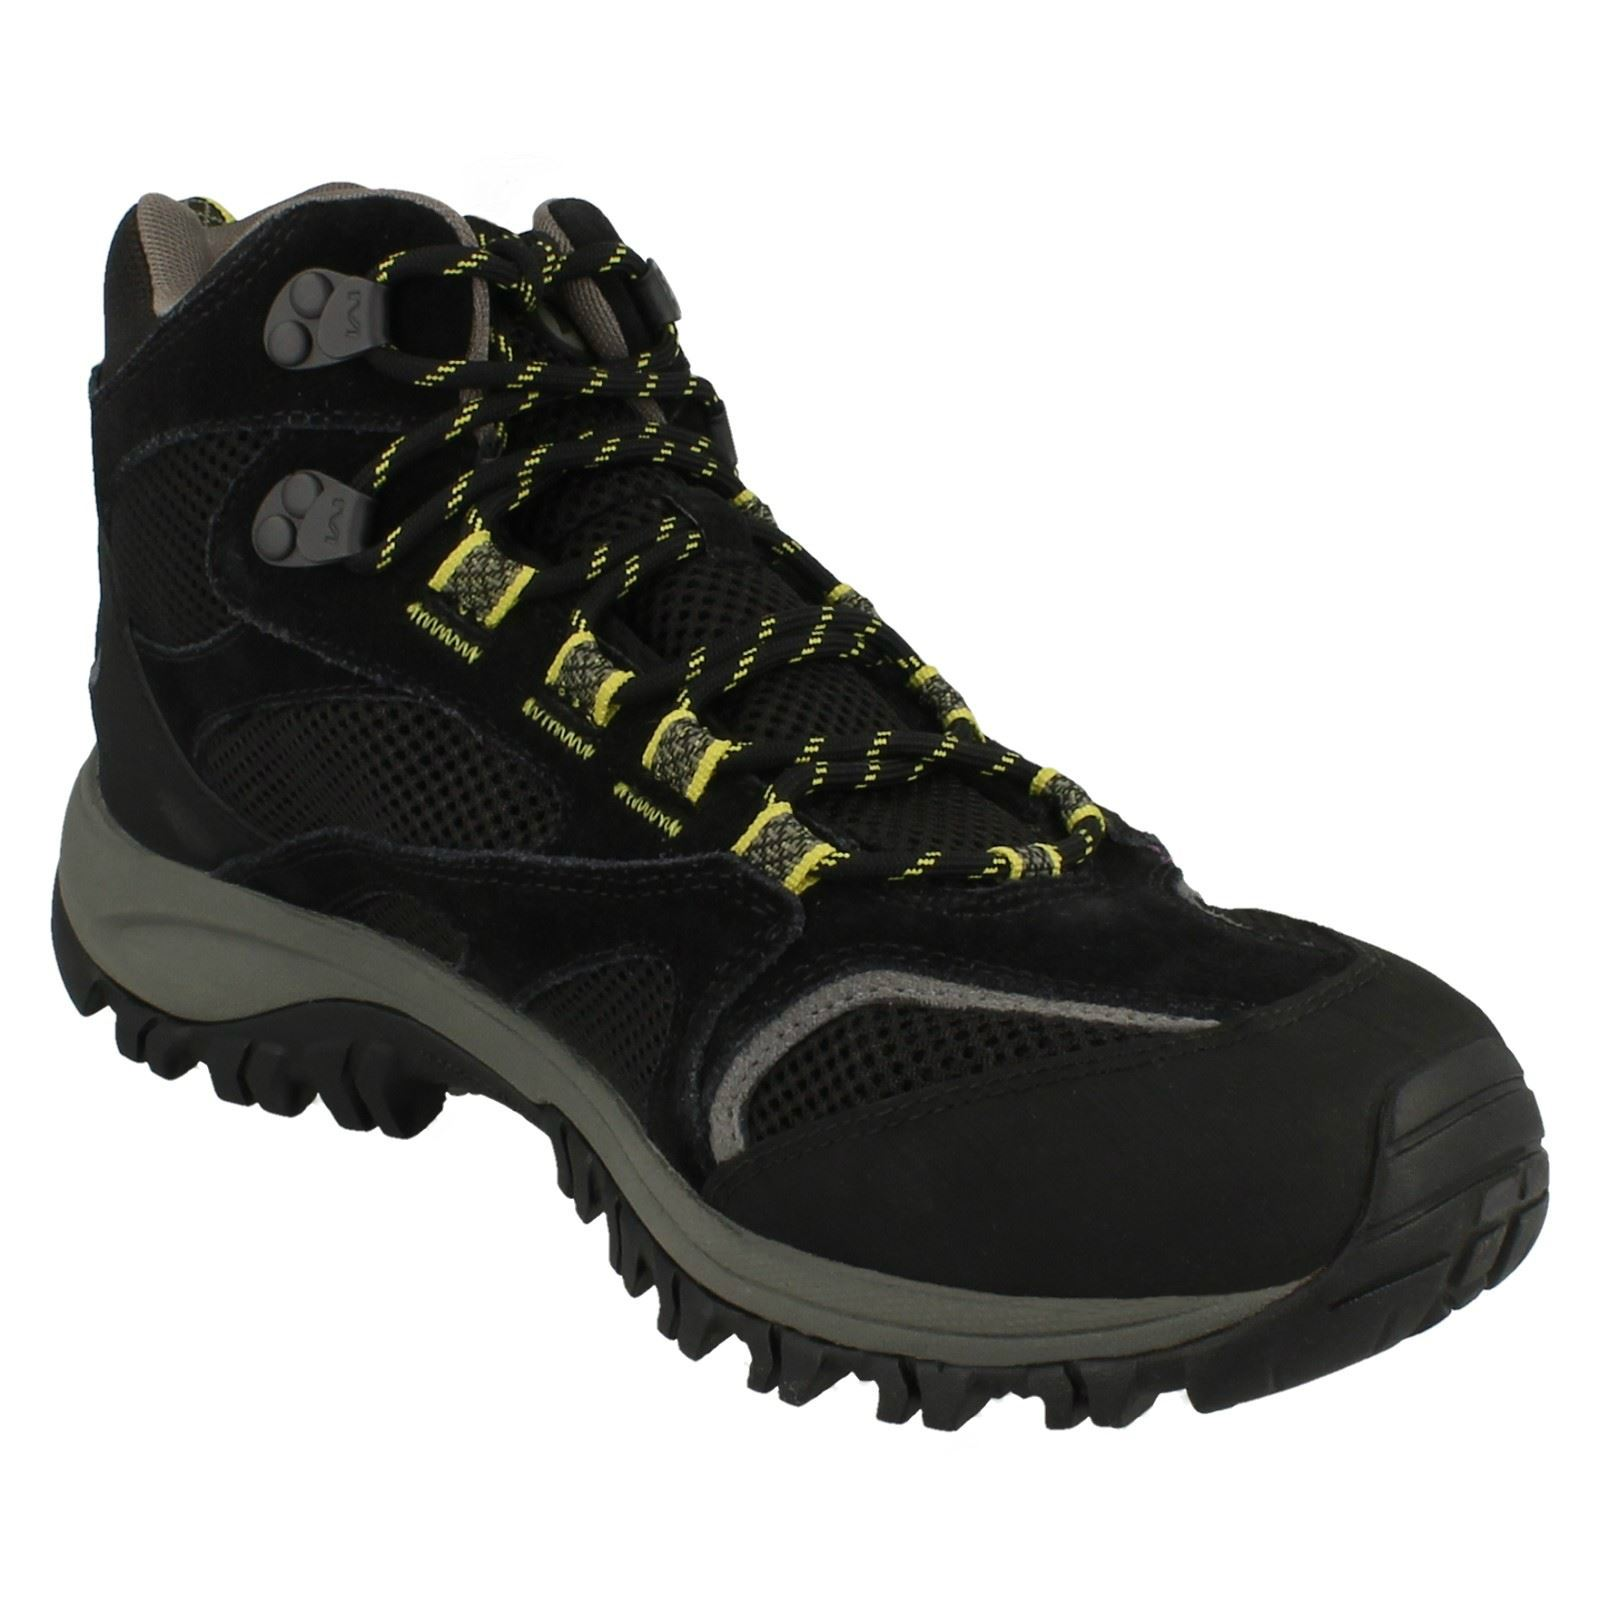 thumbnail 10 - Mens-Merrell-Waterproof-Walking-Boots-039-Phoenix-Mid-039